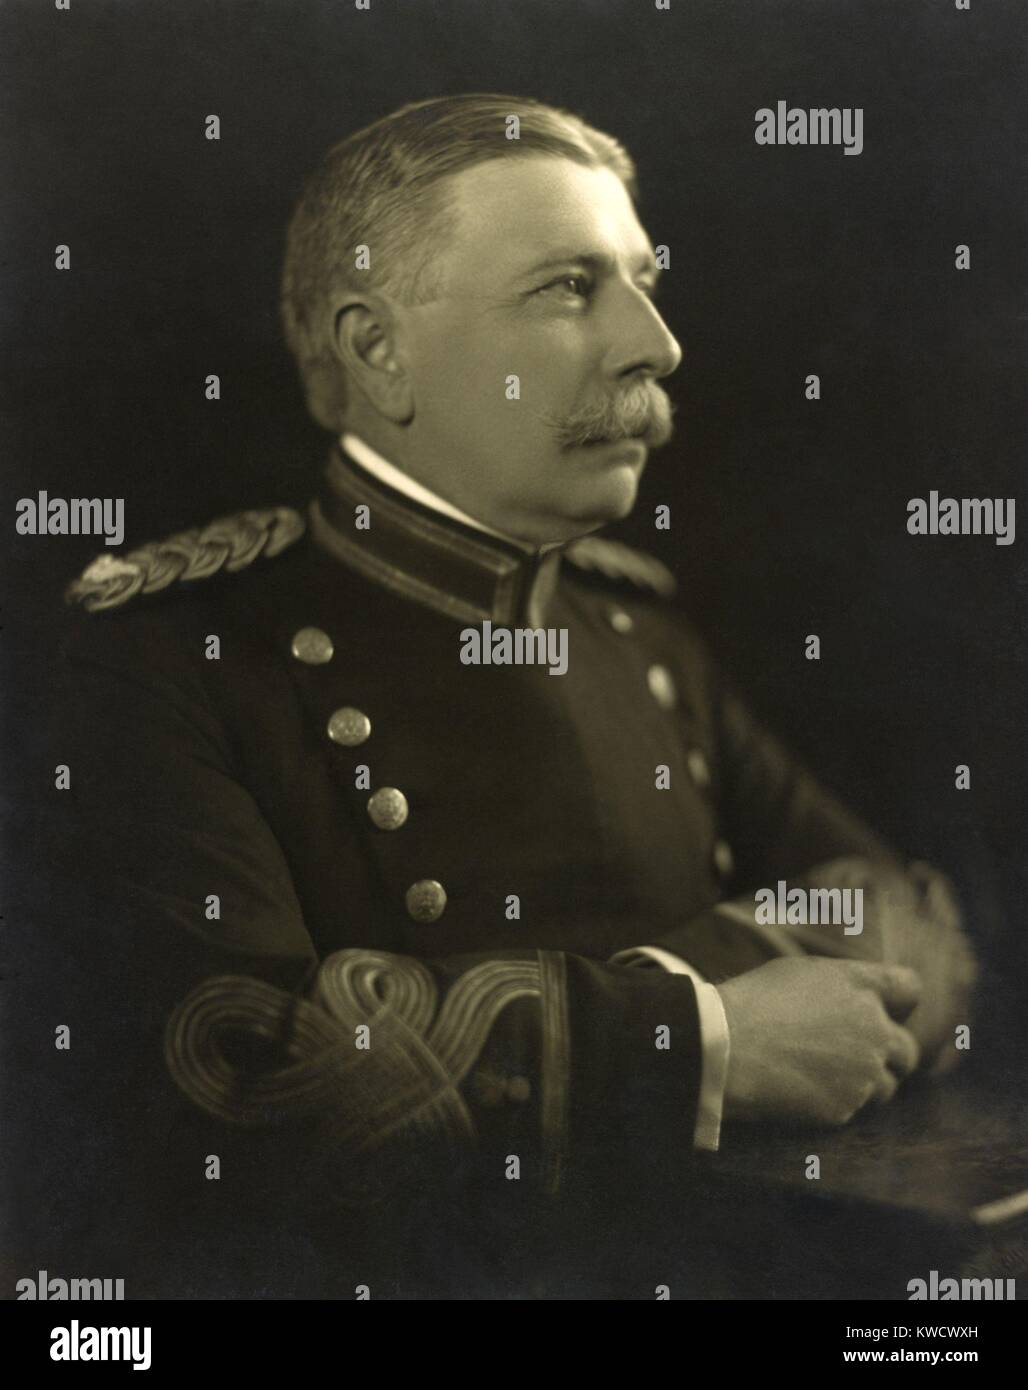 John Taliaferro Thompson, inventor of the Thompson submachine gun. The weapon was patented in 1920, and was favored - Stock Image